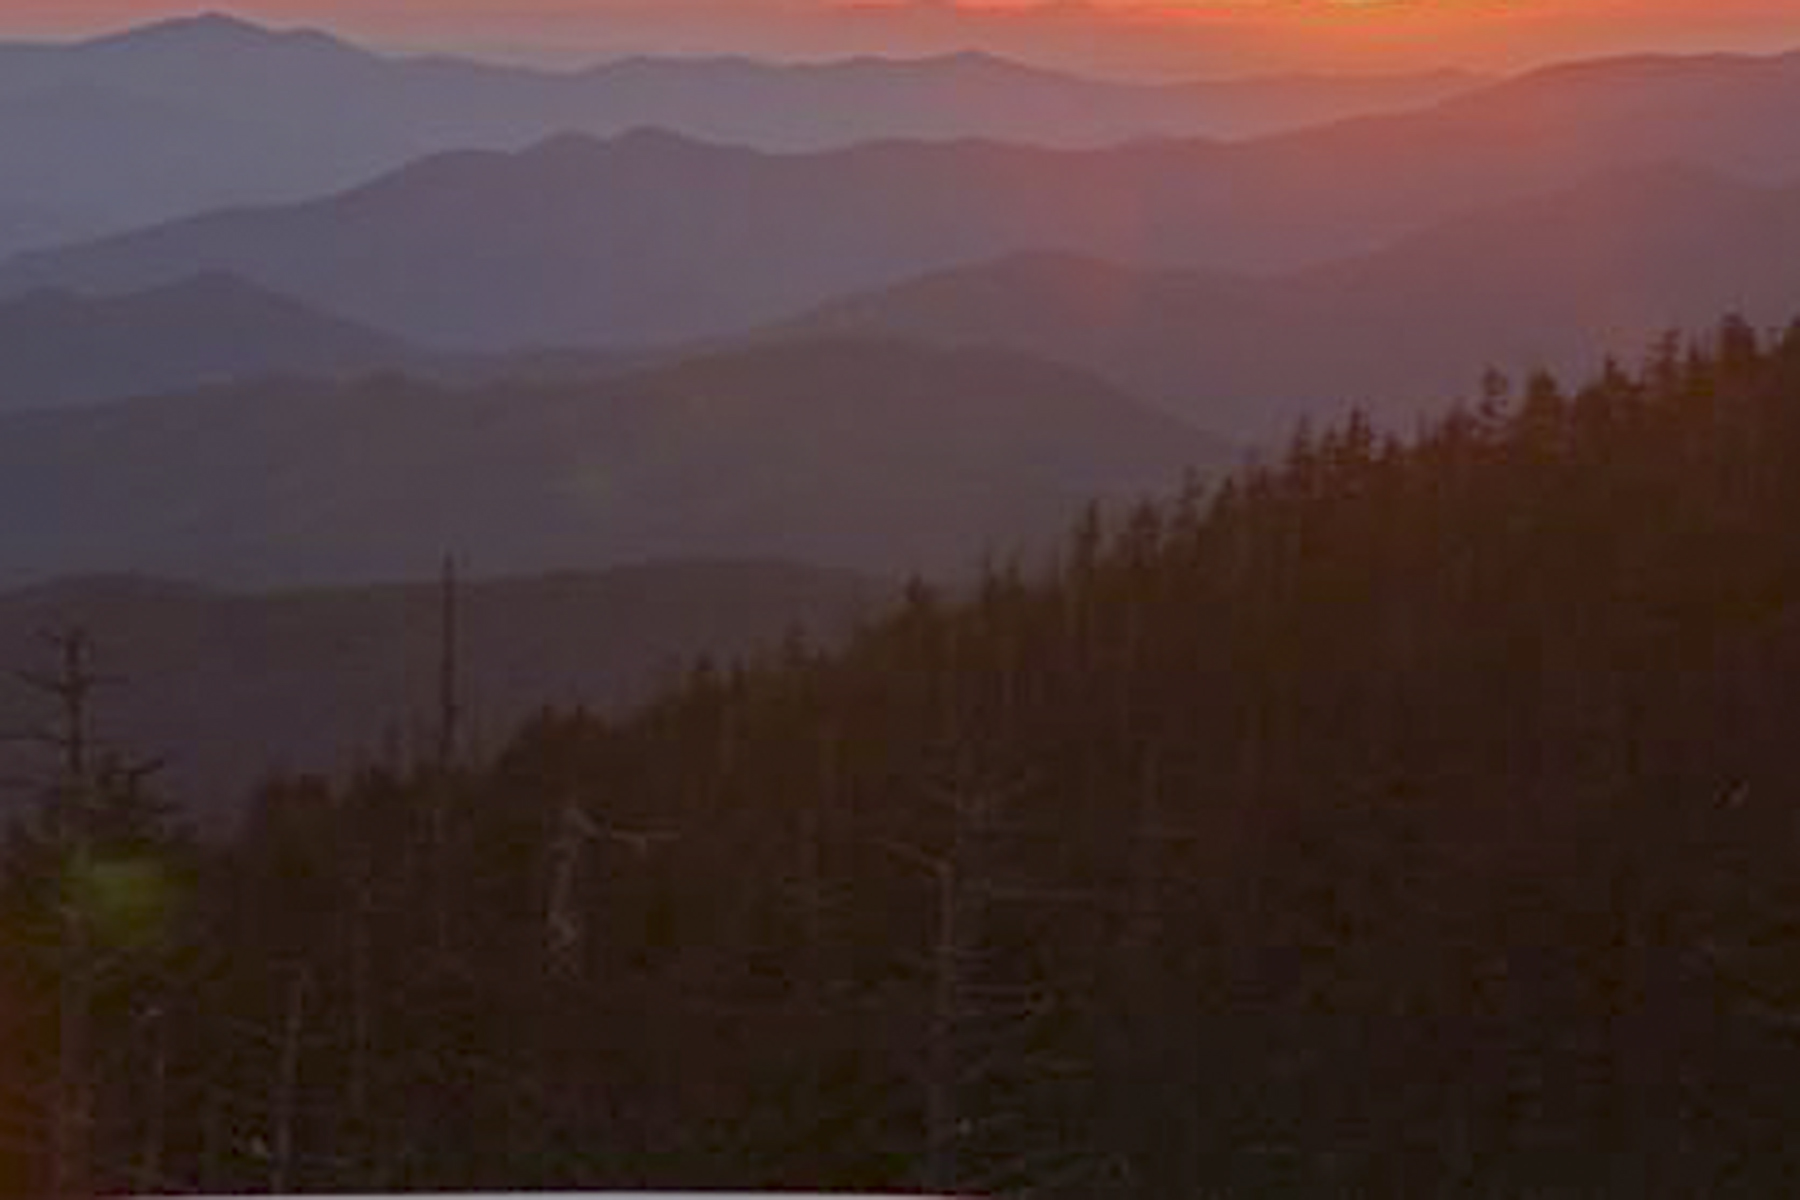 Sunrise looking over the Smokies!